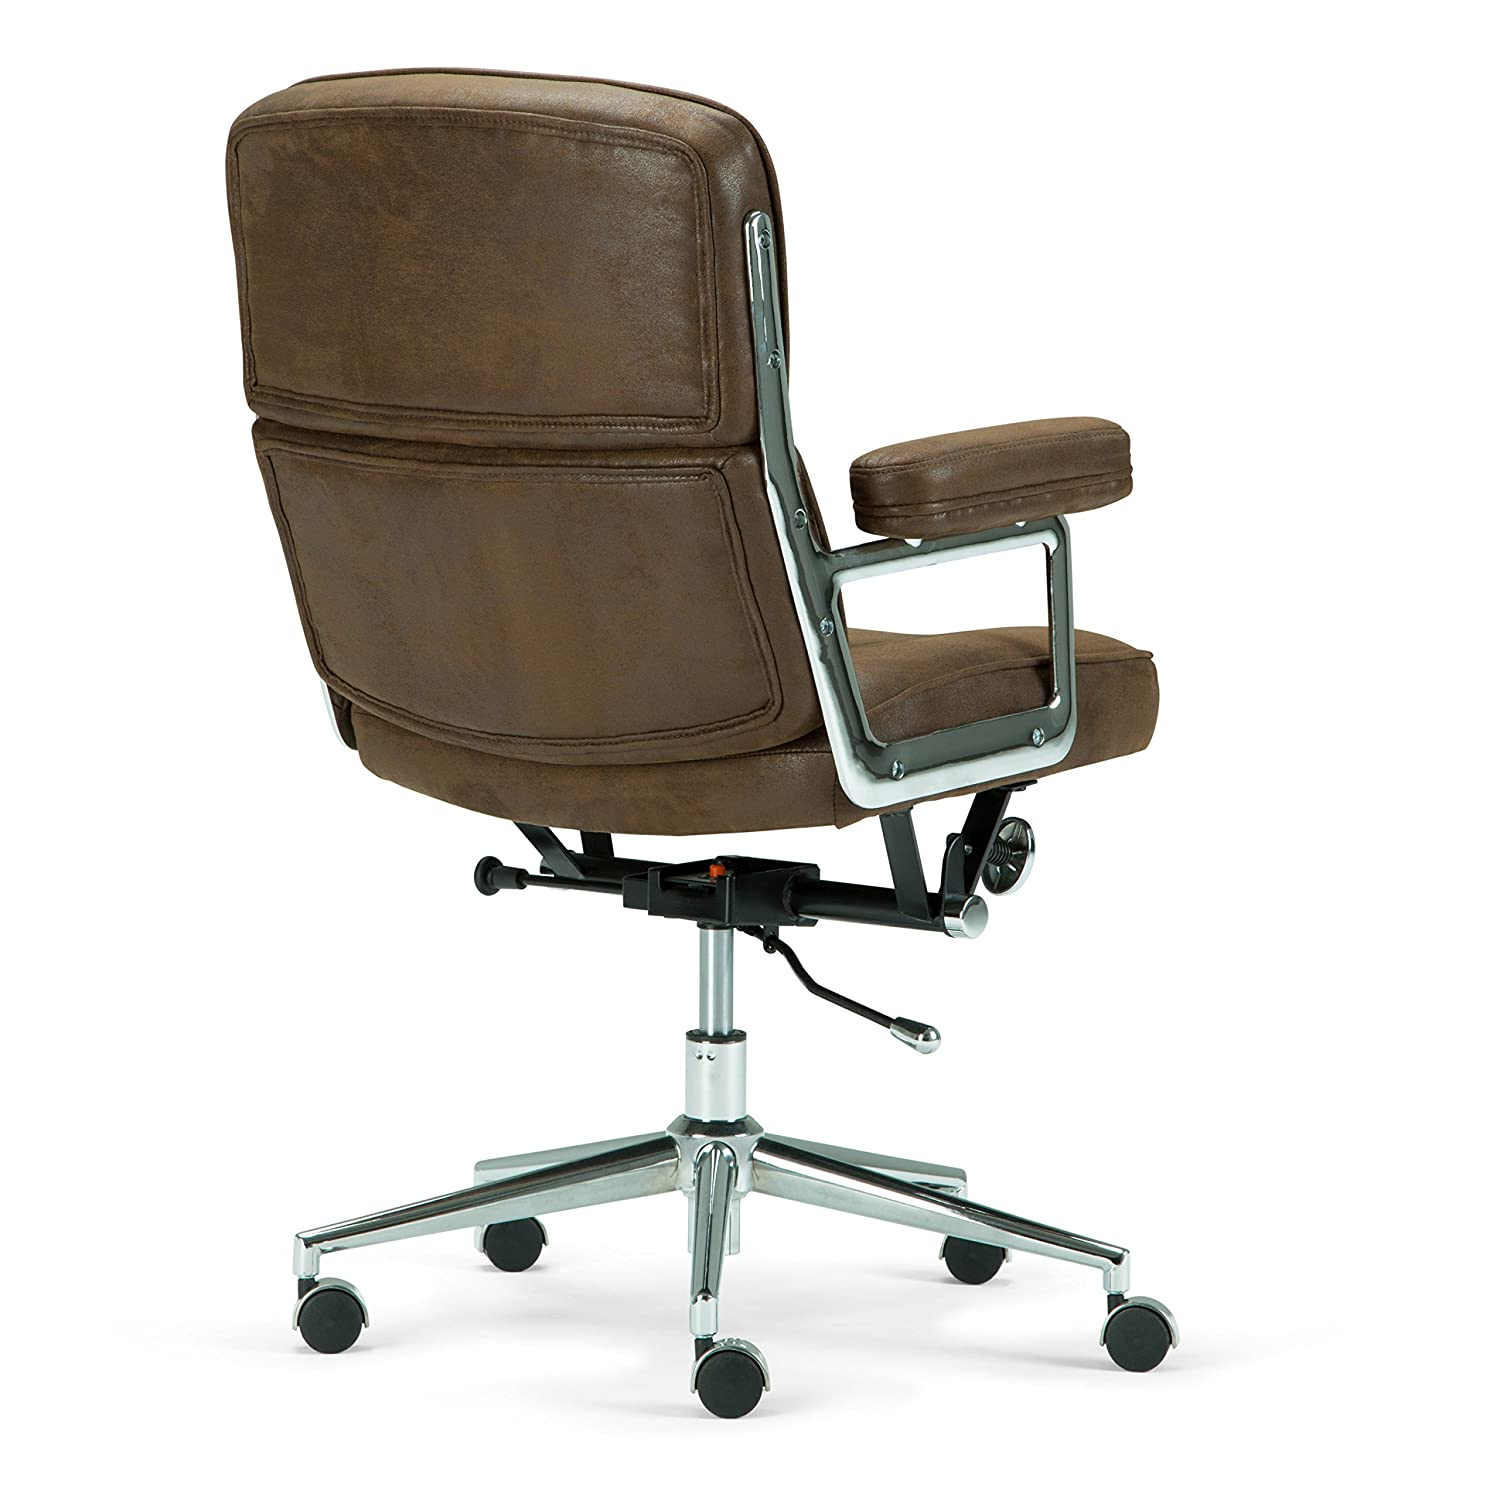 Simpli Home AXCOCHR-03 Barton Swivel Adjustable Executive Computer Office Chair in Chocolate Brown Faux Leather Ltd.